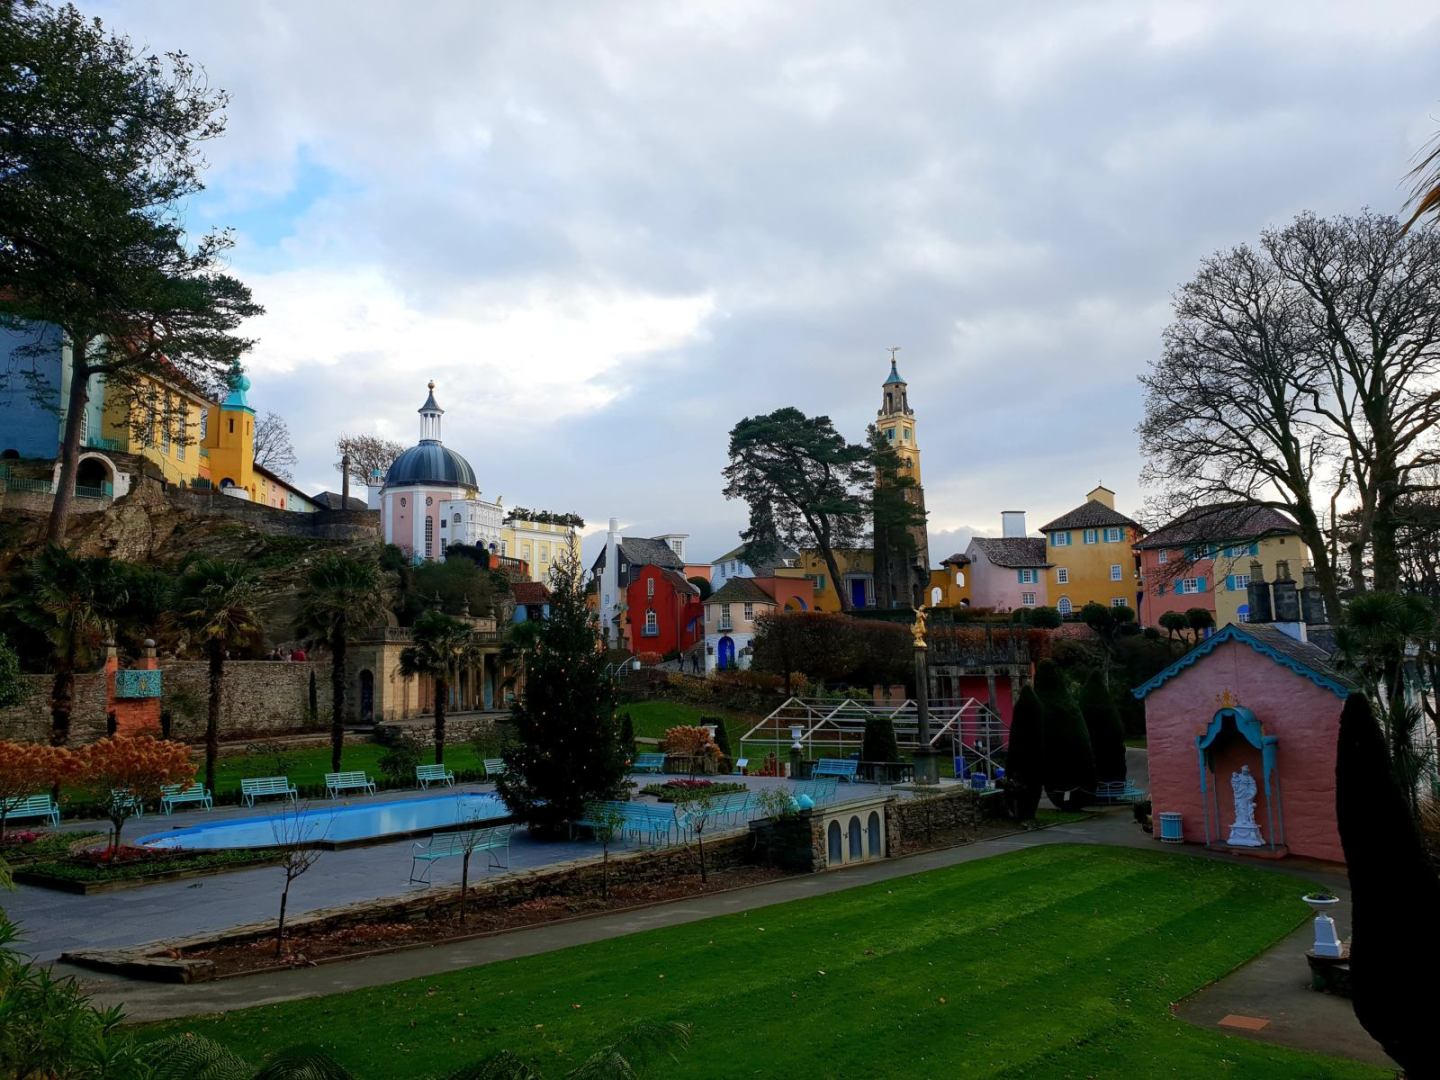 Adventures in Portmeirion in North Wales